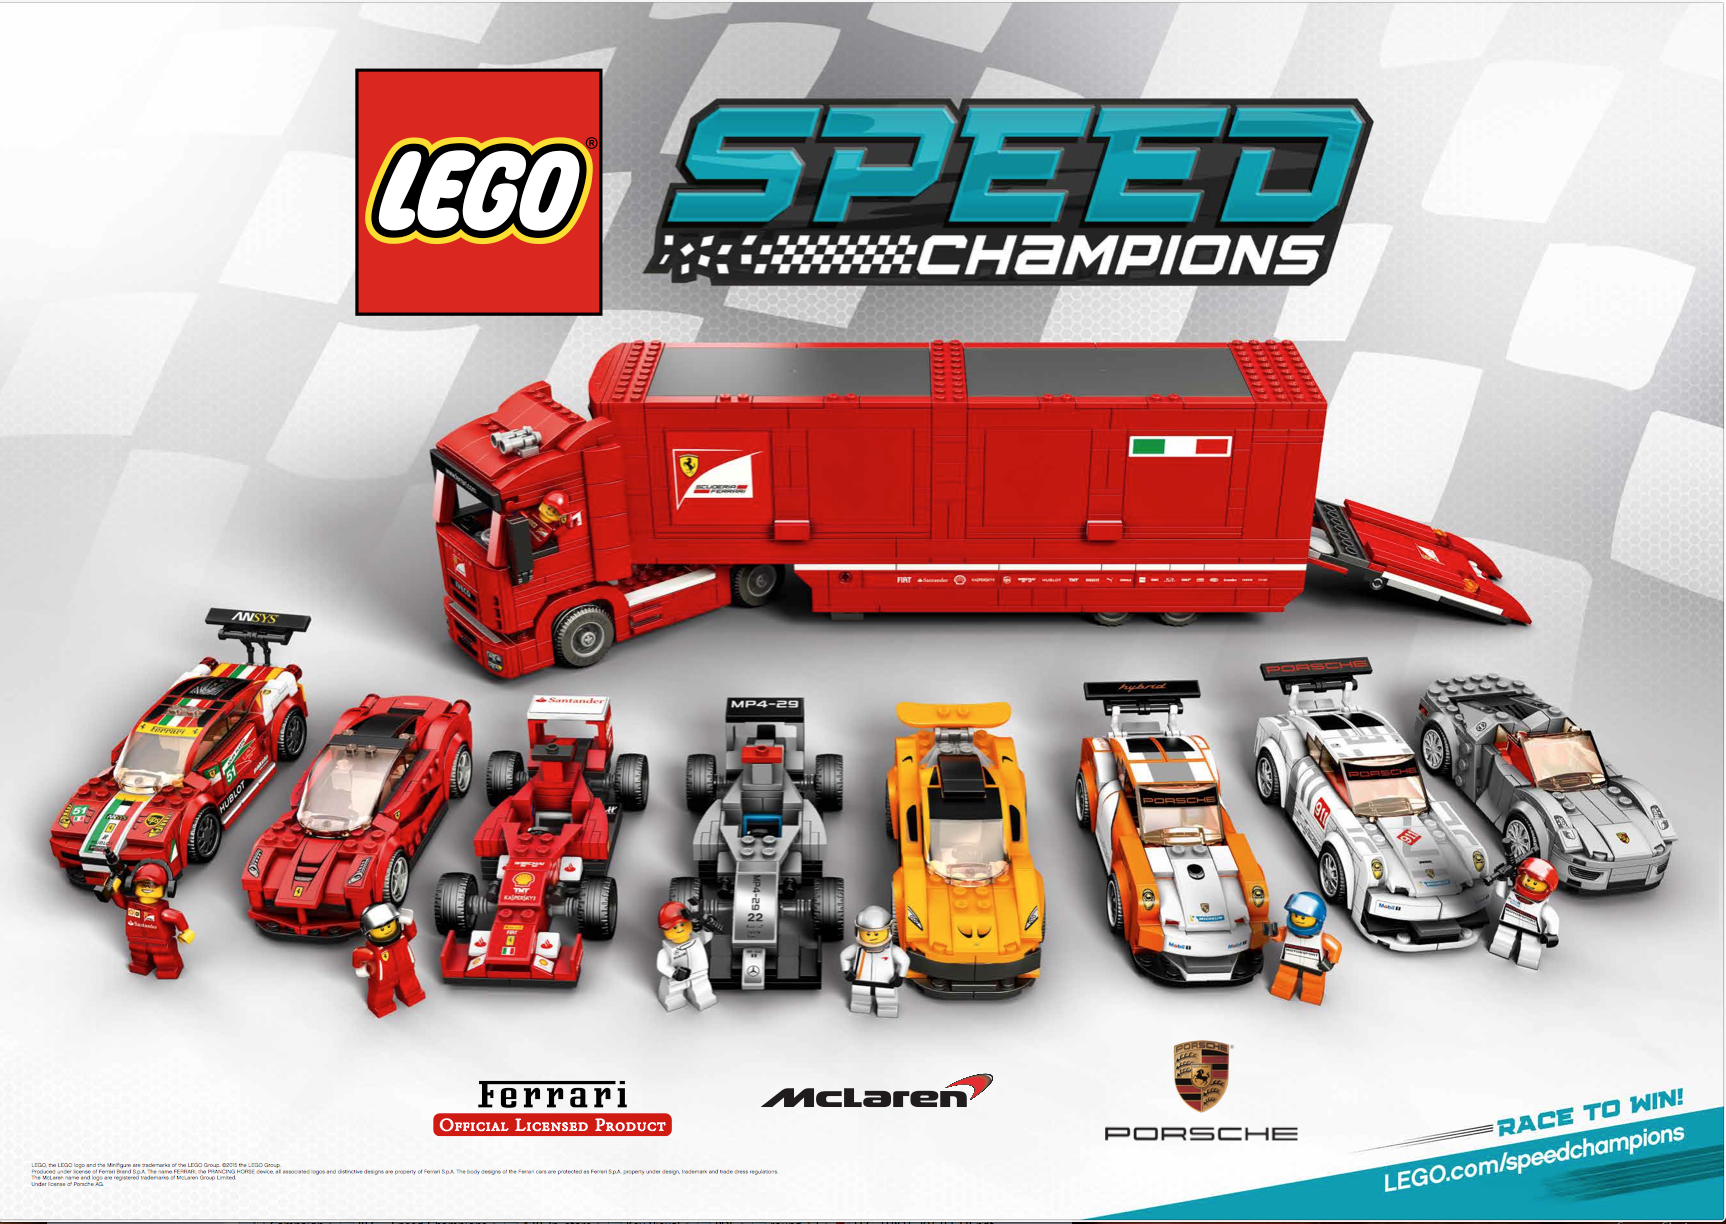 lego on twitter lego speed champions are available now ferrari mclarenf1 porsche. Black Bedroom Furniture Sets. Home Design Ideas